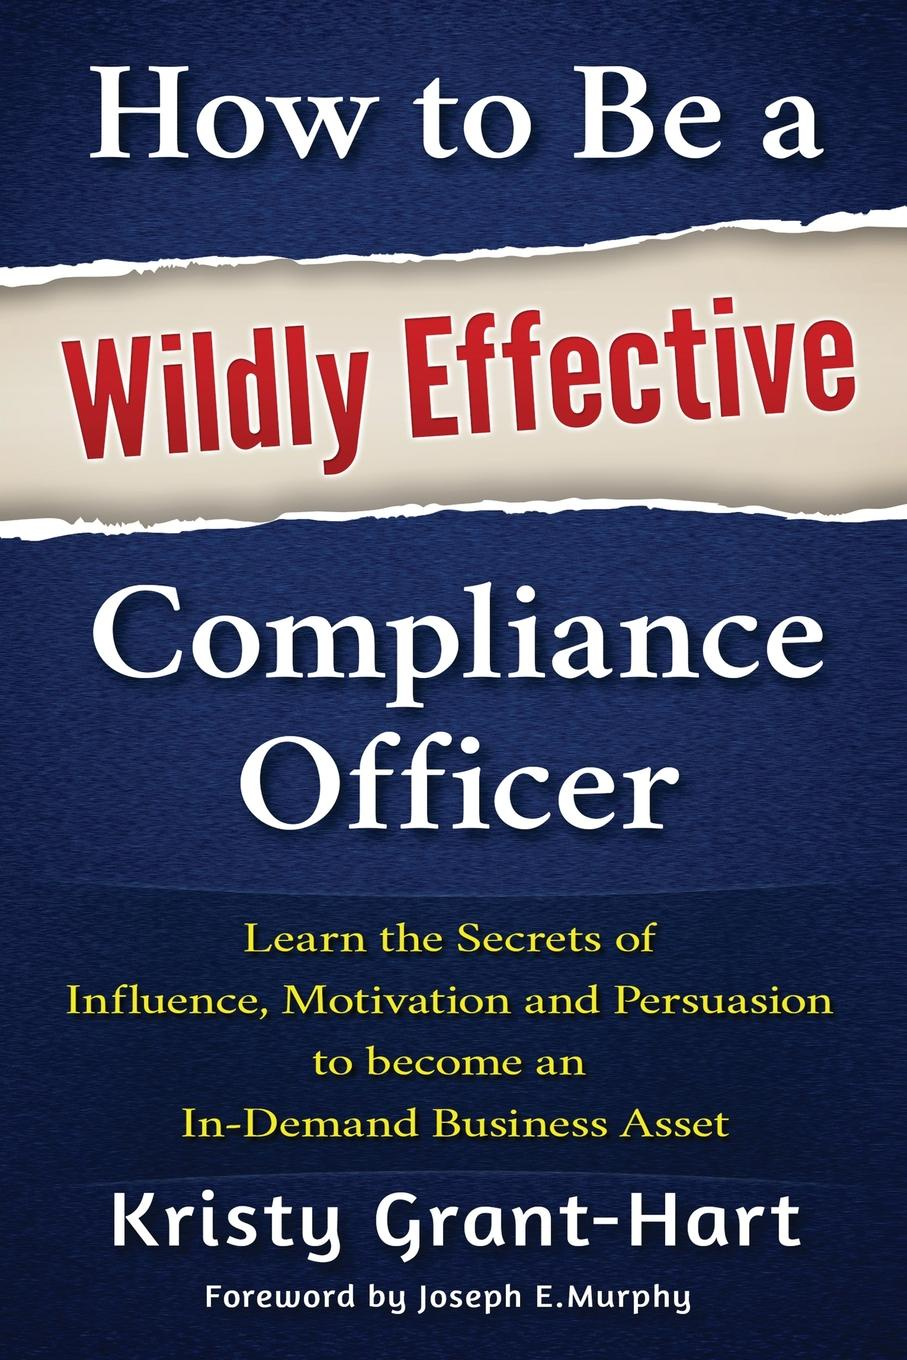 Kristy Grant-Hart How to Be a Wildly Effective Compliance Officer. Learn the Secrets of Influence, Motivation and Persuasion to Become an In-Demand Business Asset helena zelenina how to become rich or to be a housekeeper